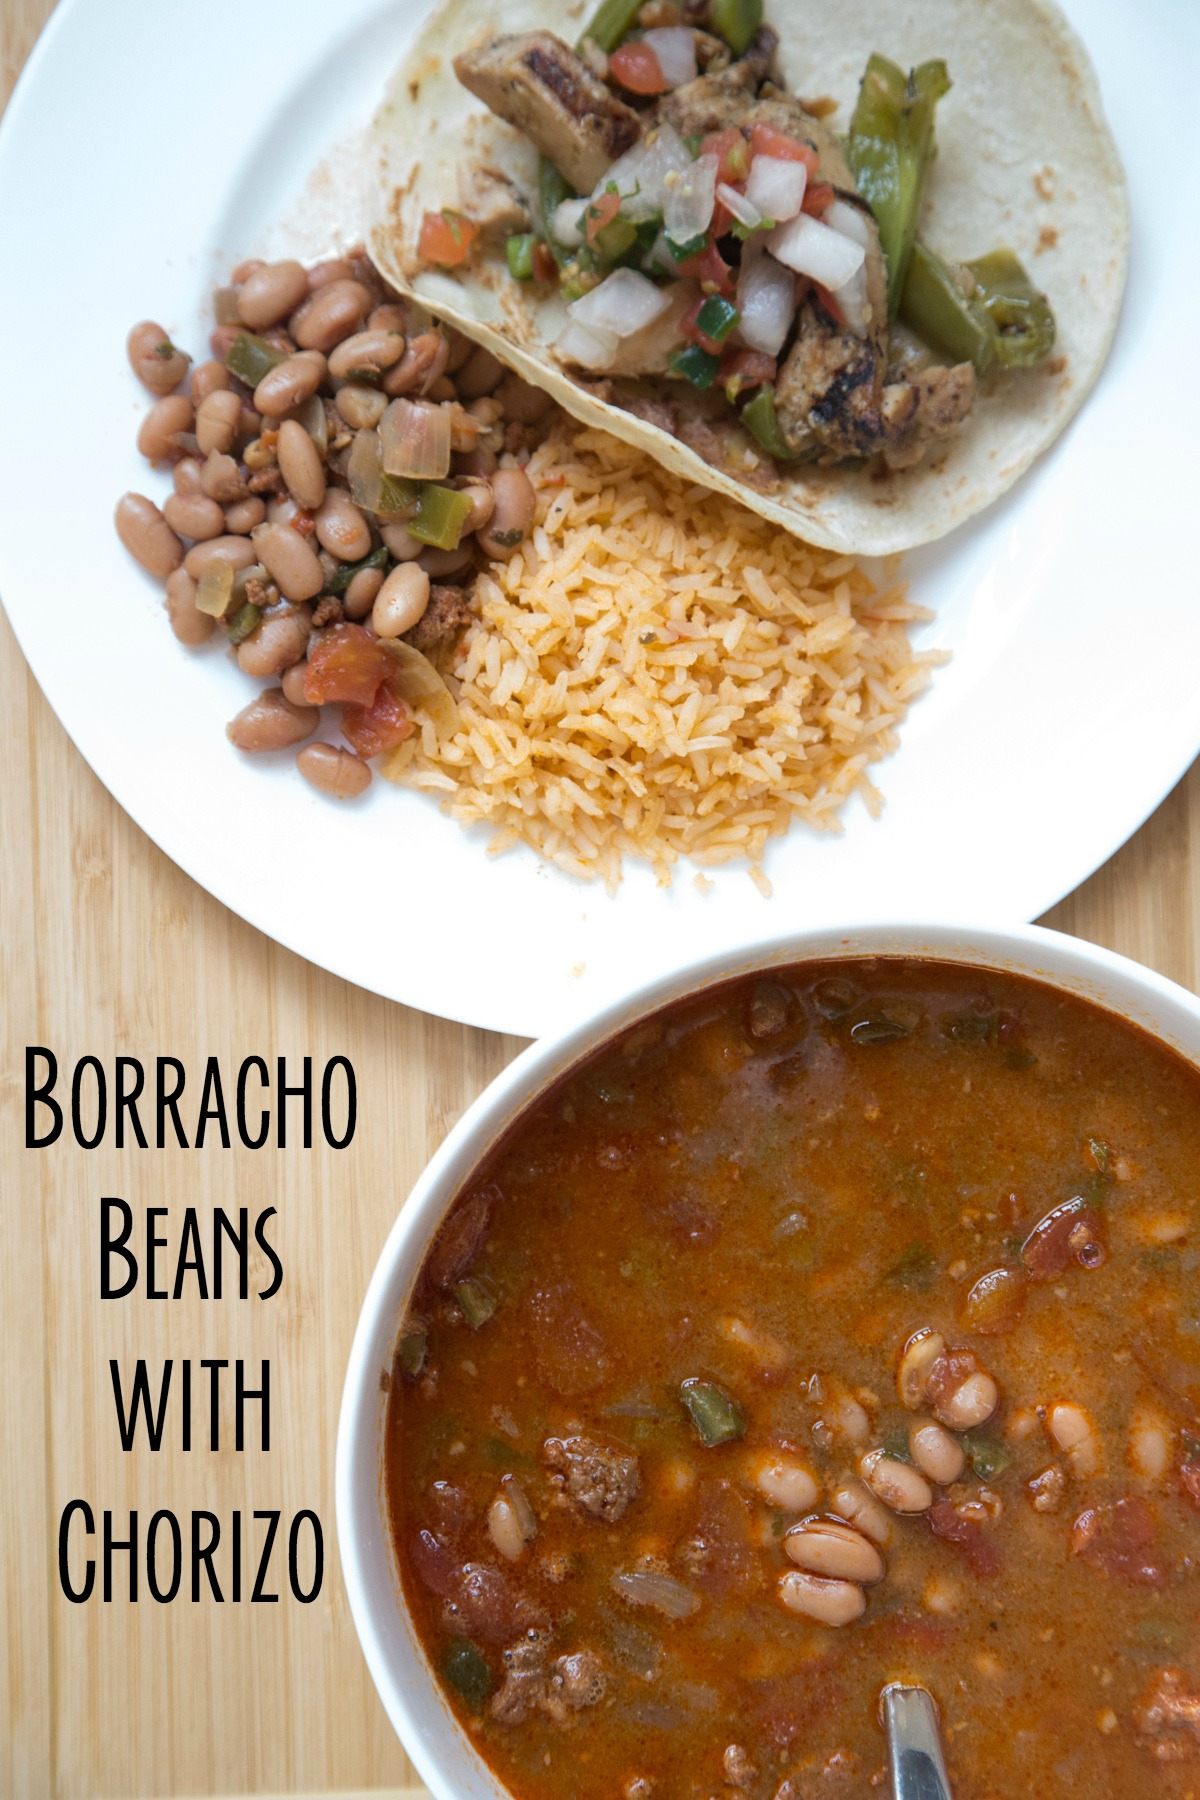 Borracho Beans with Chorizo on 5DollarDinners.com